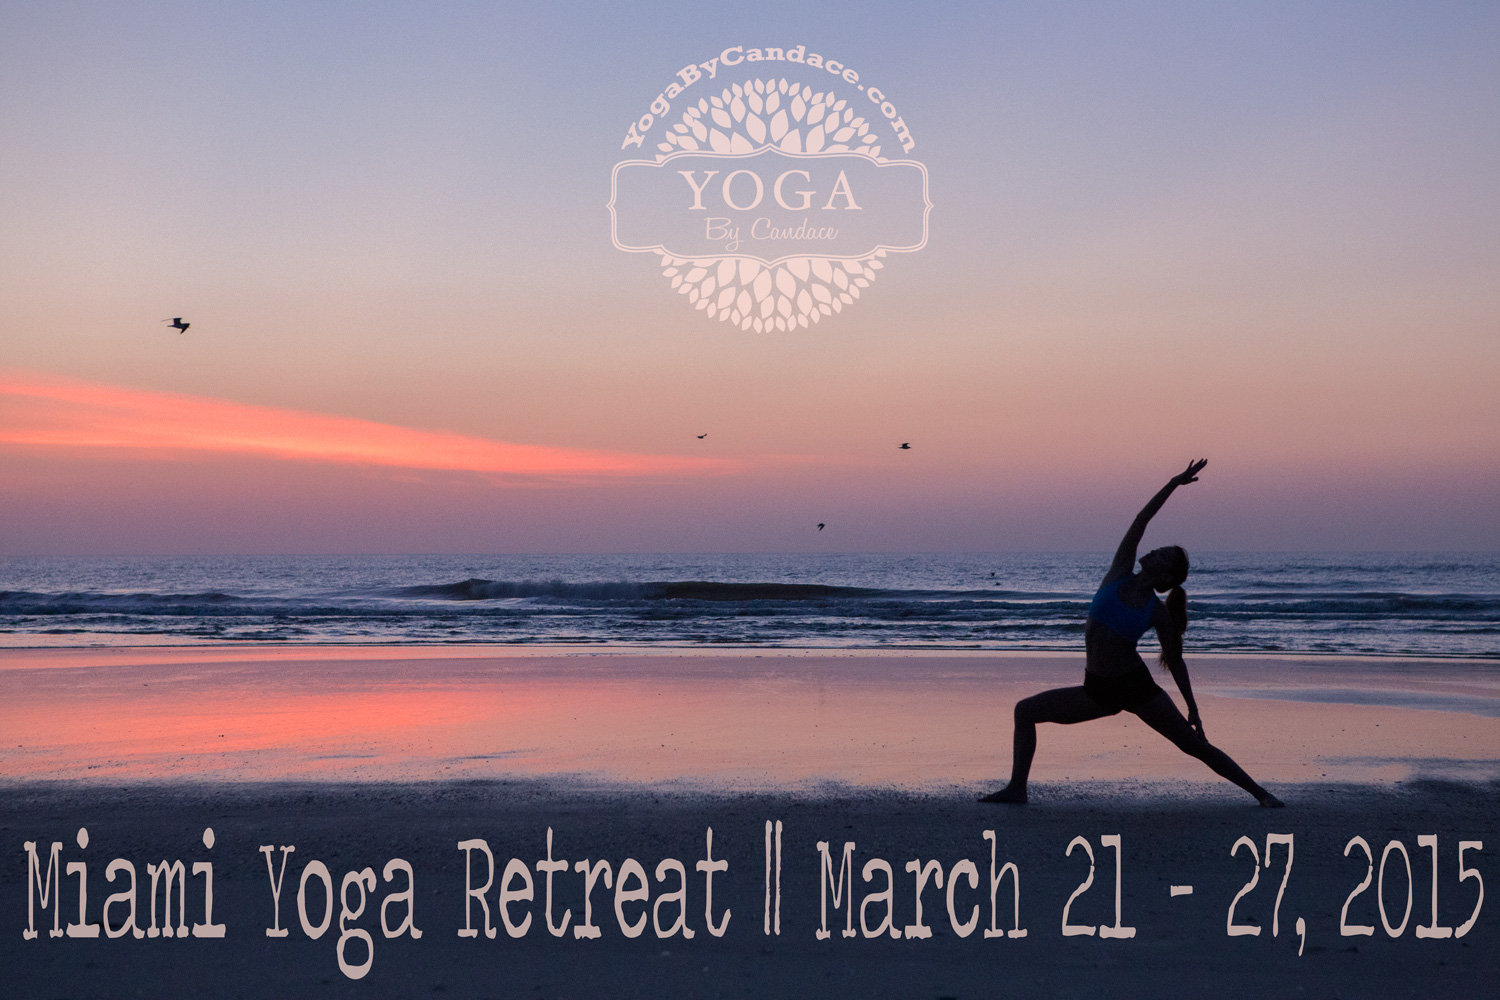 Join us for 7days, 6nights in beautiful Miami for a yoga retreat